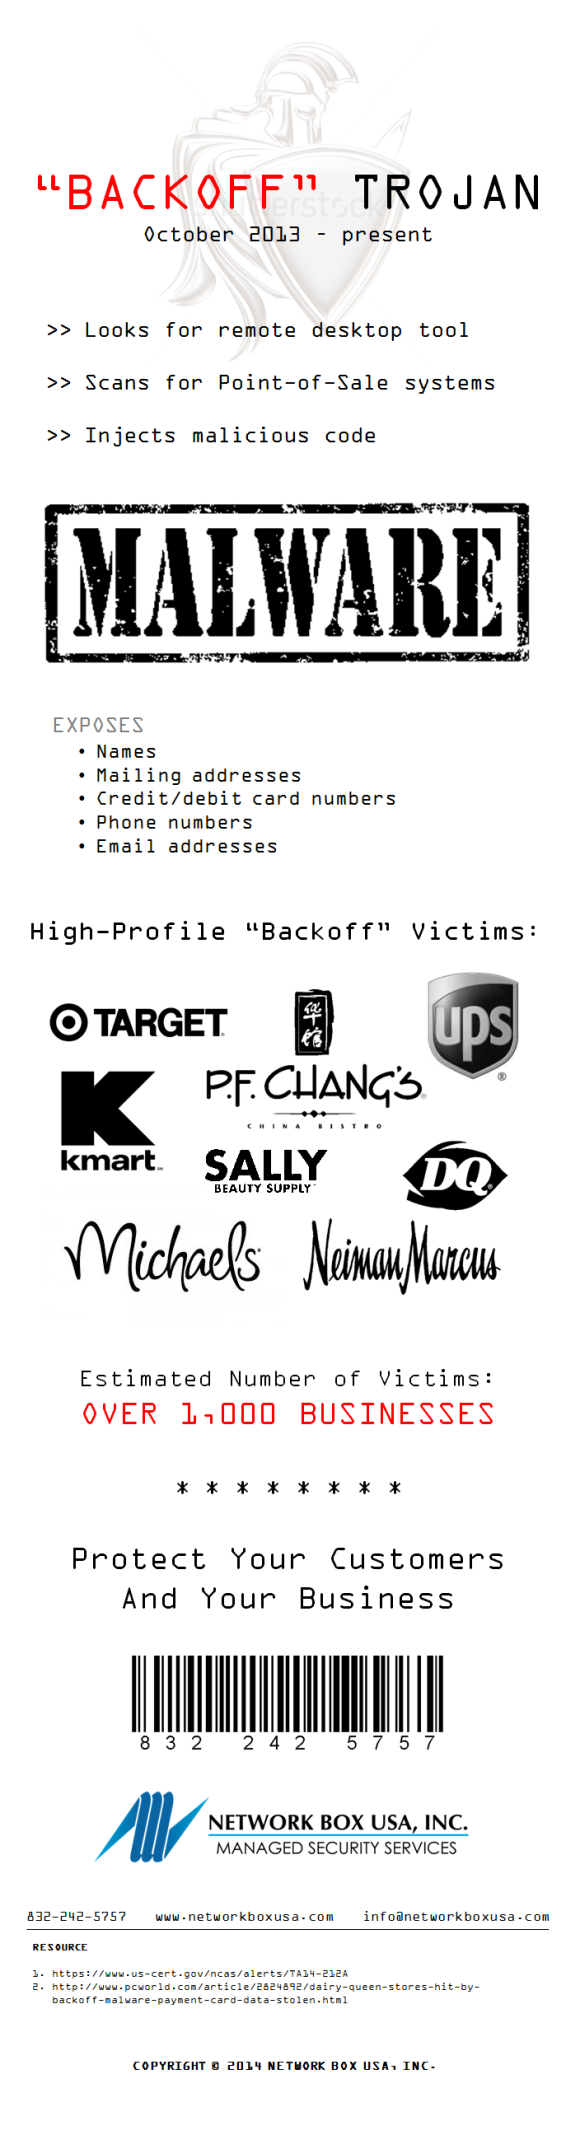 Backoff Trojan and POS Security